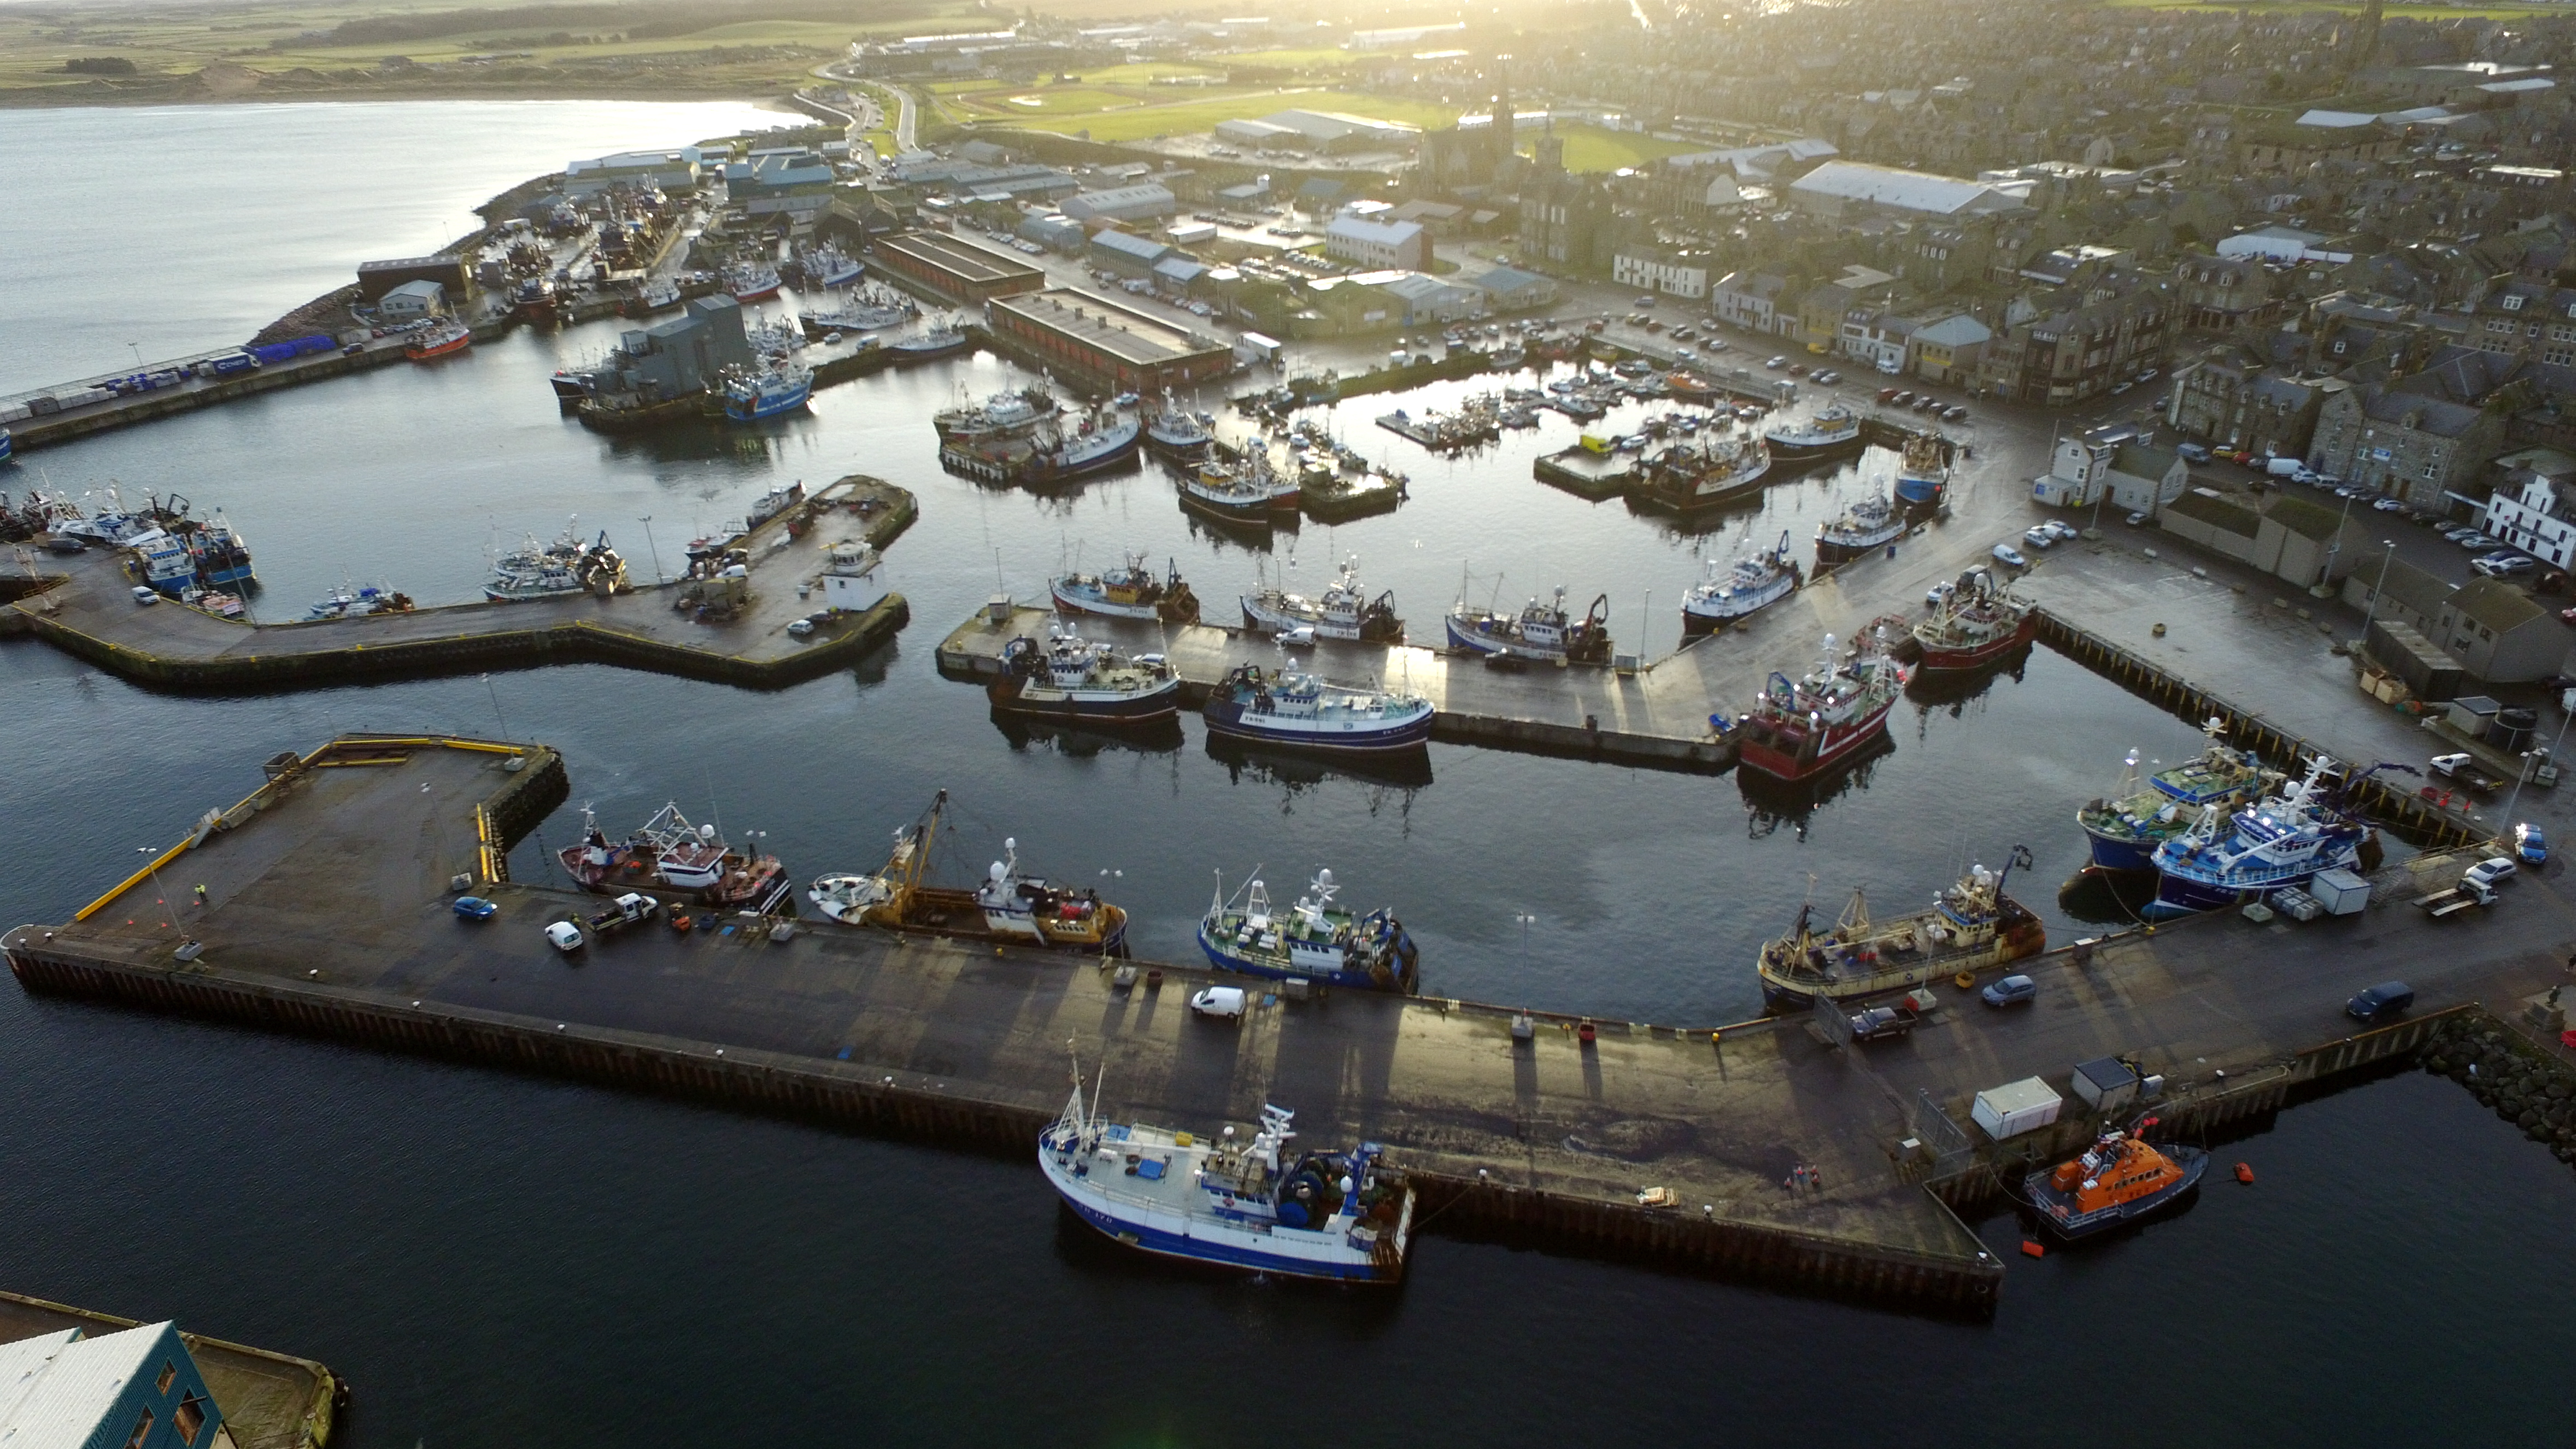 Aerial locator of Fraserburgh Harbour.  Aerial Image - Drone / Phantom 3 advanced.  Picture by KENNY ELRICK